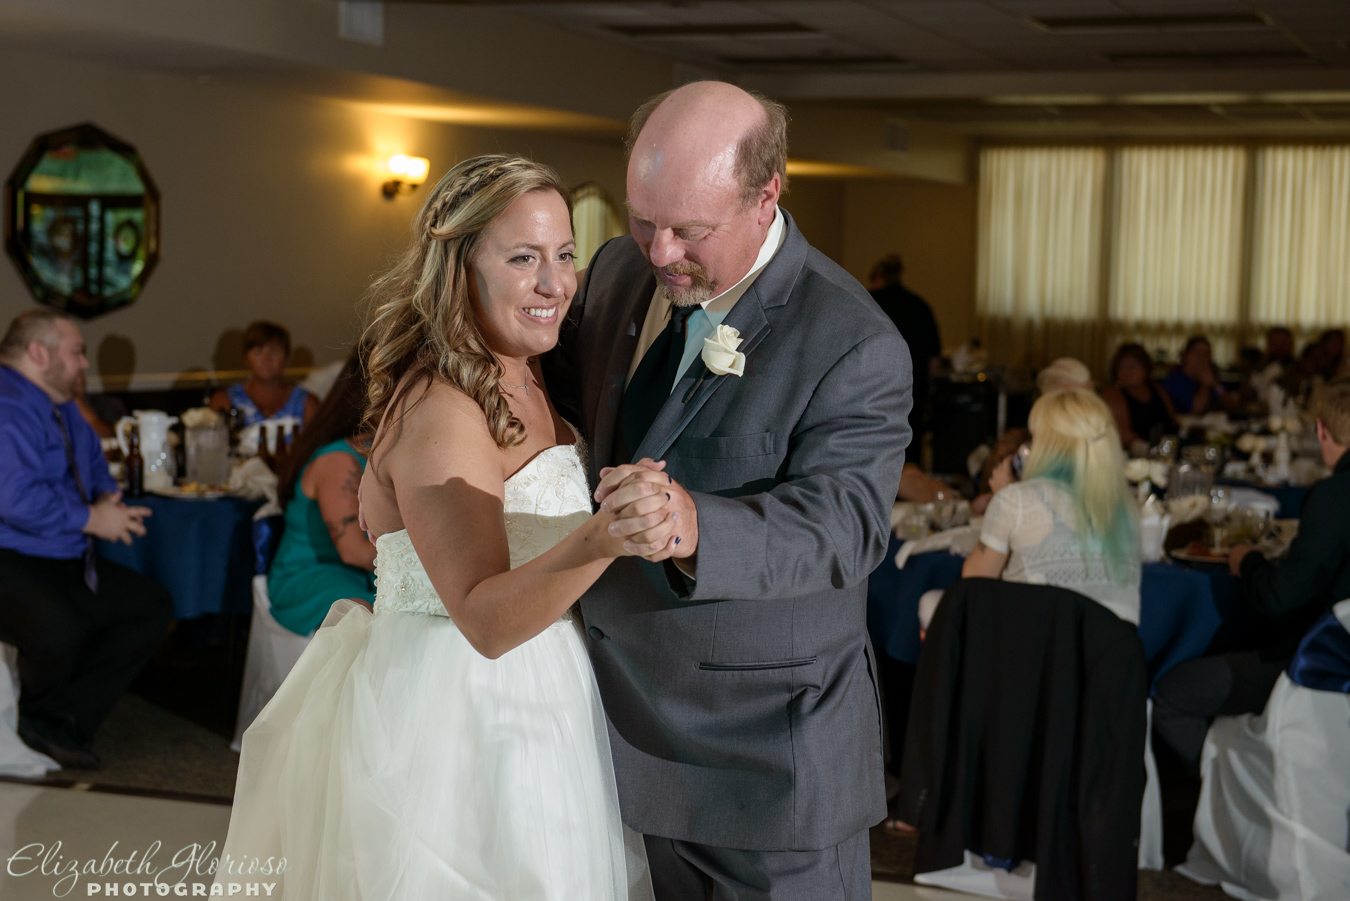 Zakovec_Wedding_Glorioso_Photography_Cleveland-143